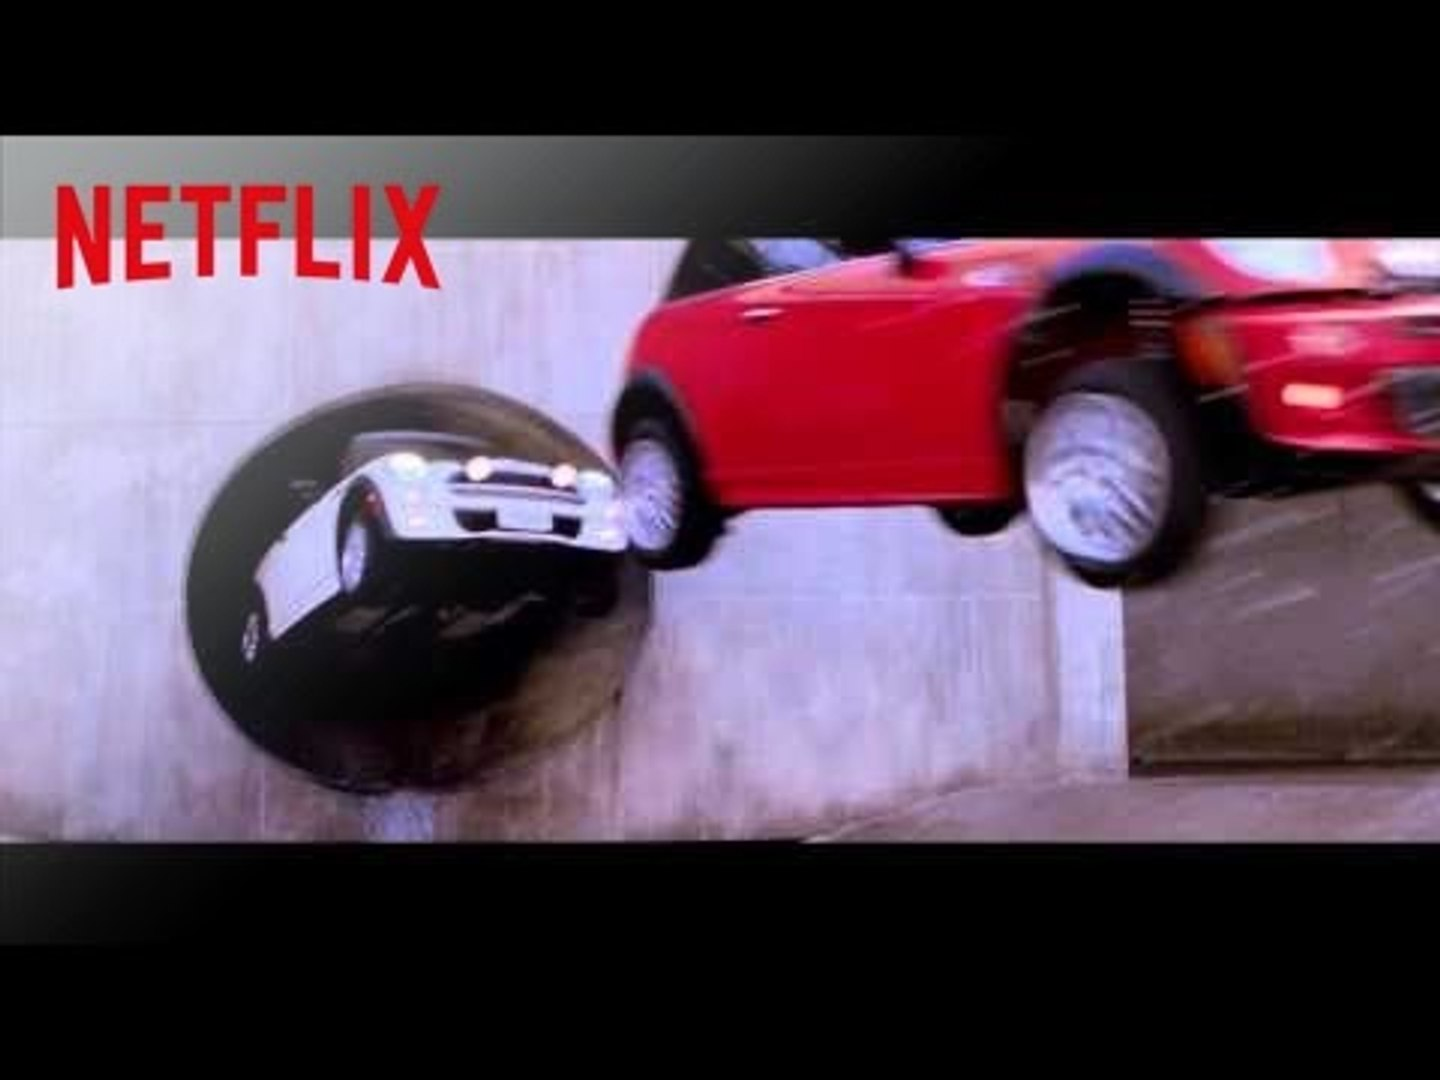 Now On Netflix Canada: The Italian Job [HD] | Netflix